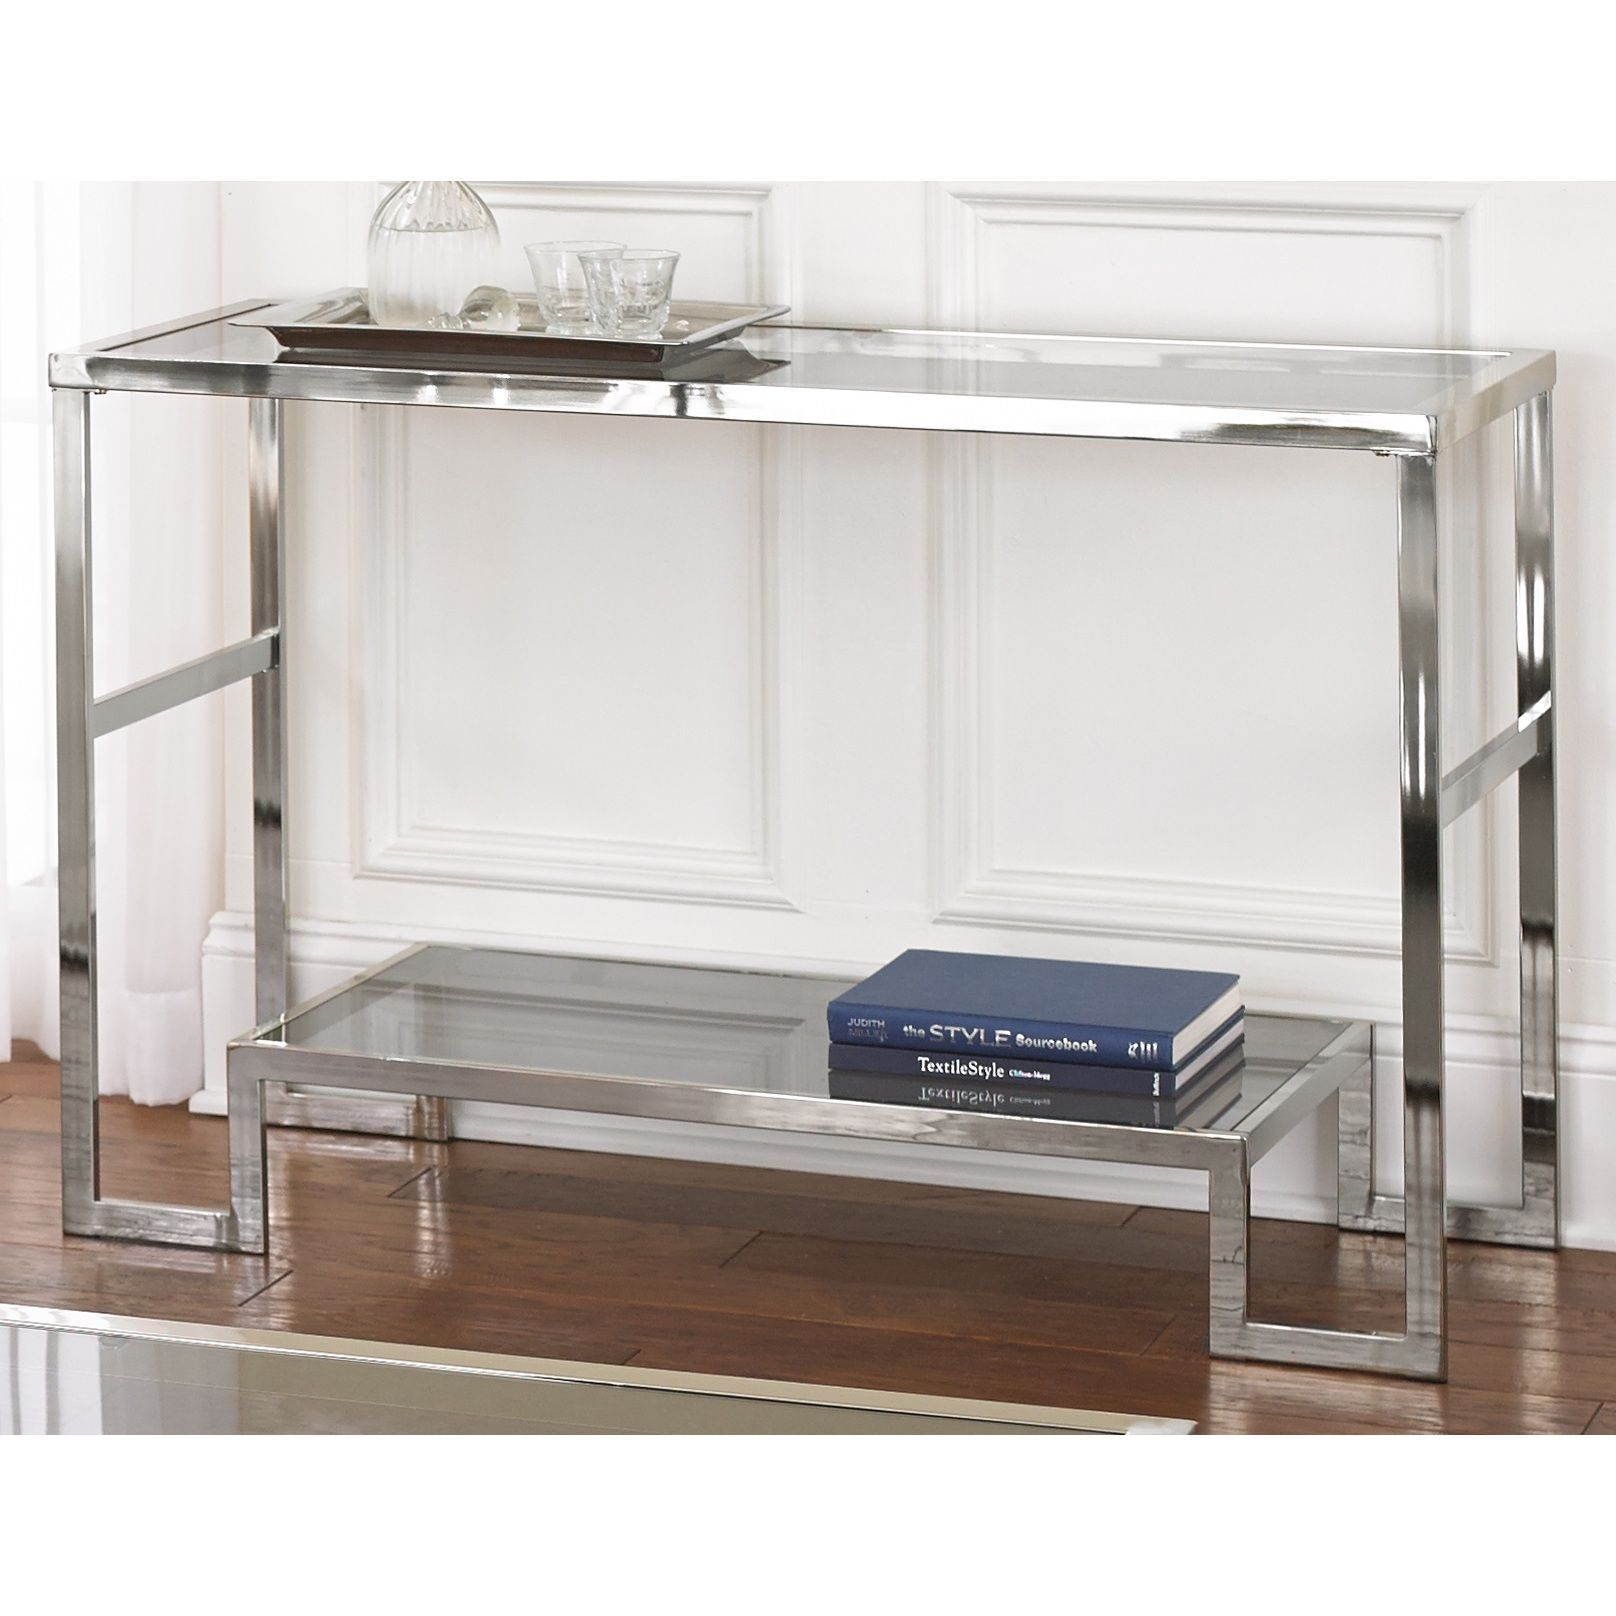 cordele chrome and glass sofa table greyson living metal accent console with shelf coffee end tables for less armchairs room small tiffany style desk lamp white corner uma